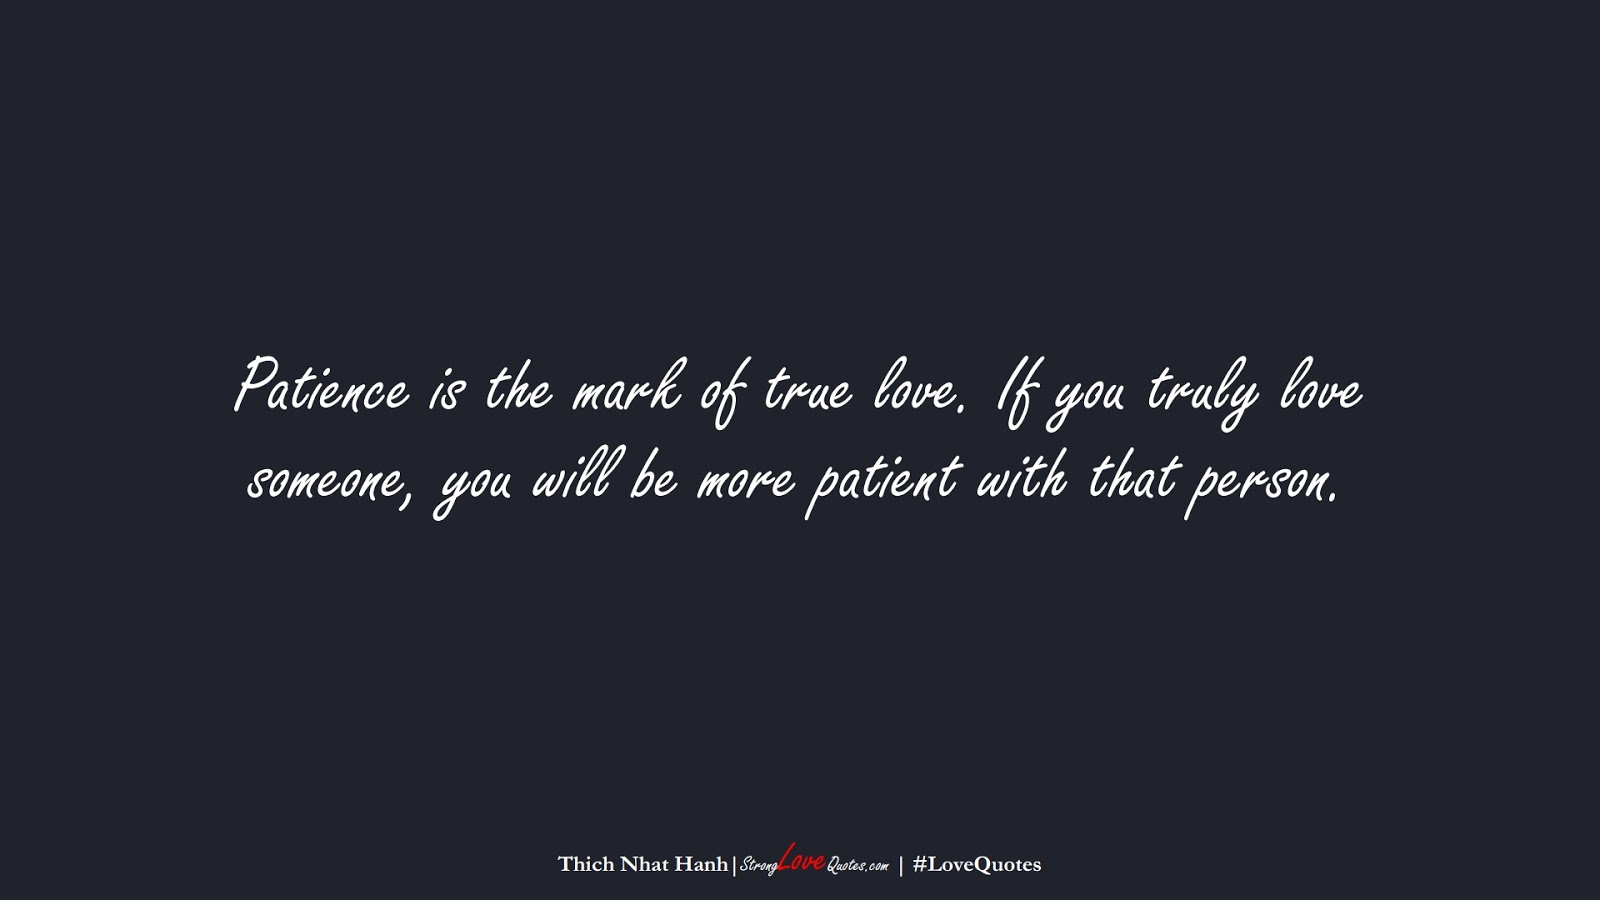 Patience is the mark of true love. If you truly love someone, you will be more patient with that person. (Thich Nhat Hanh);  #LoveQuotes